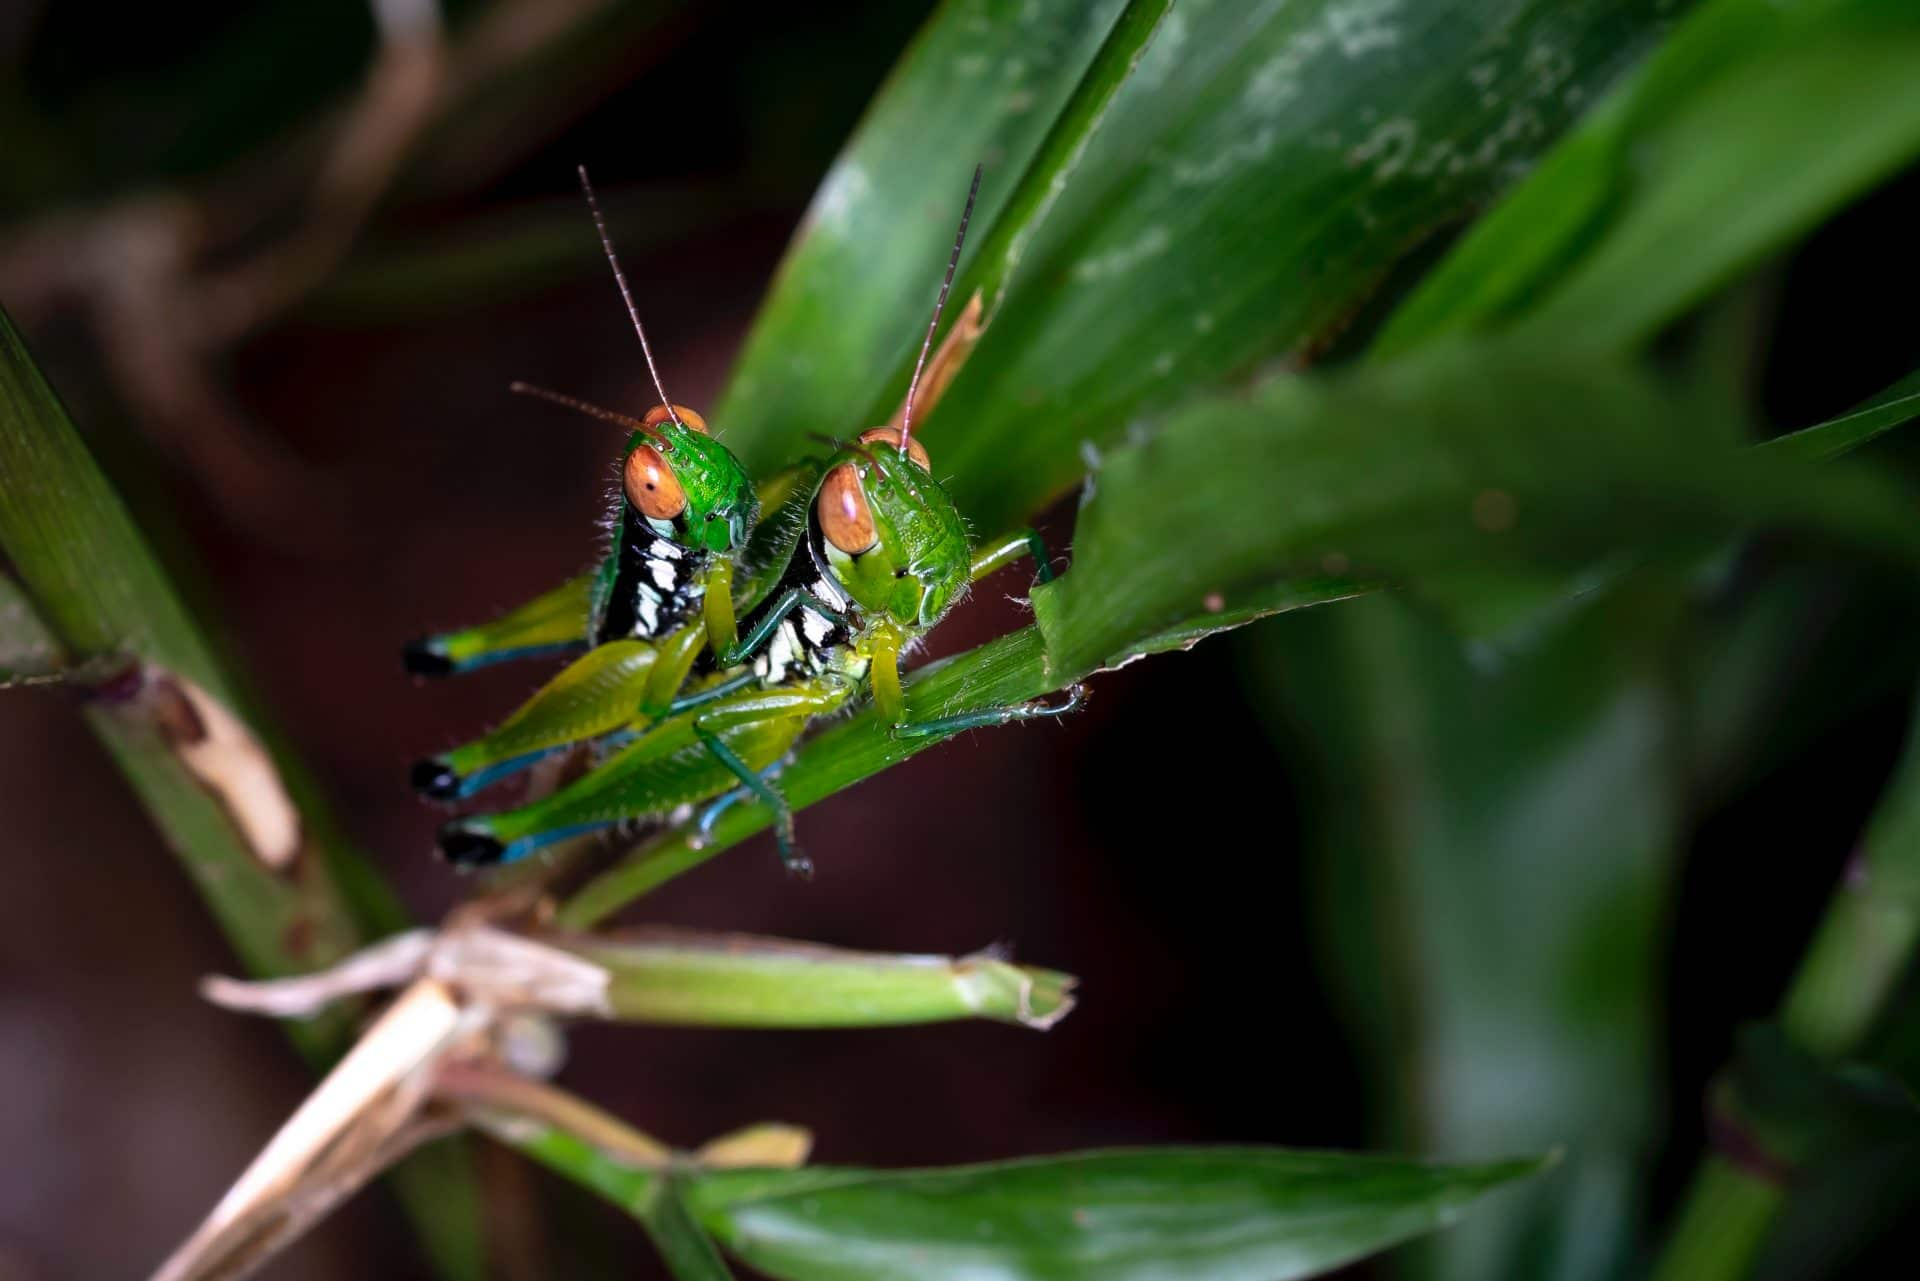 Two grasshoppers on a leaf